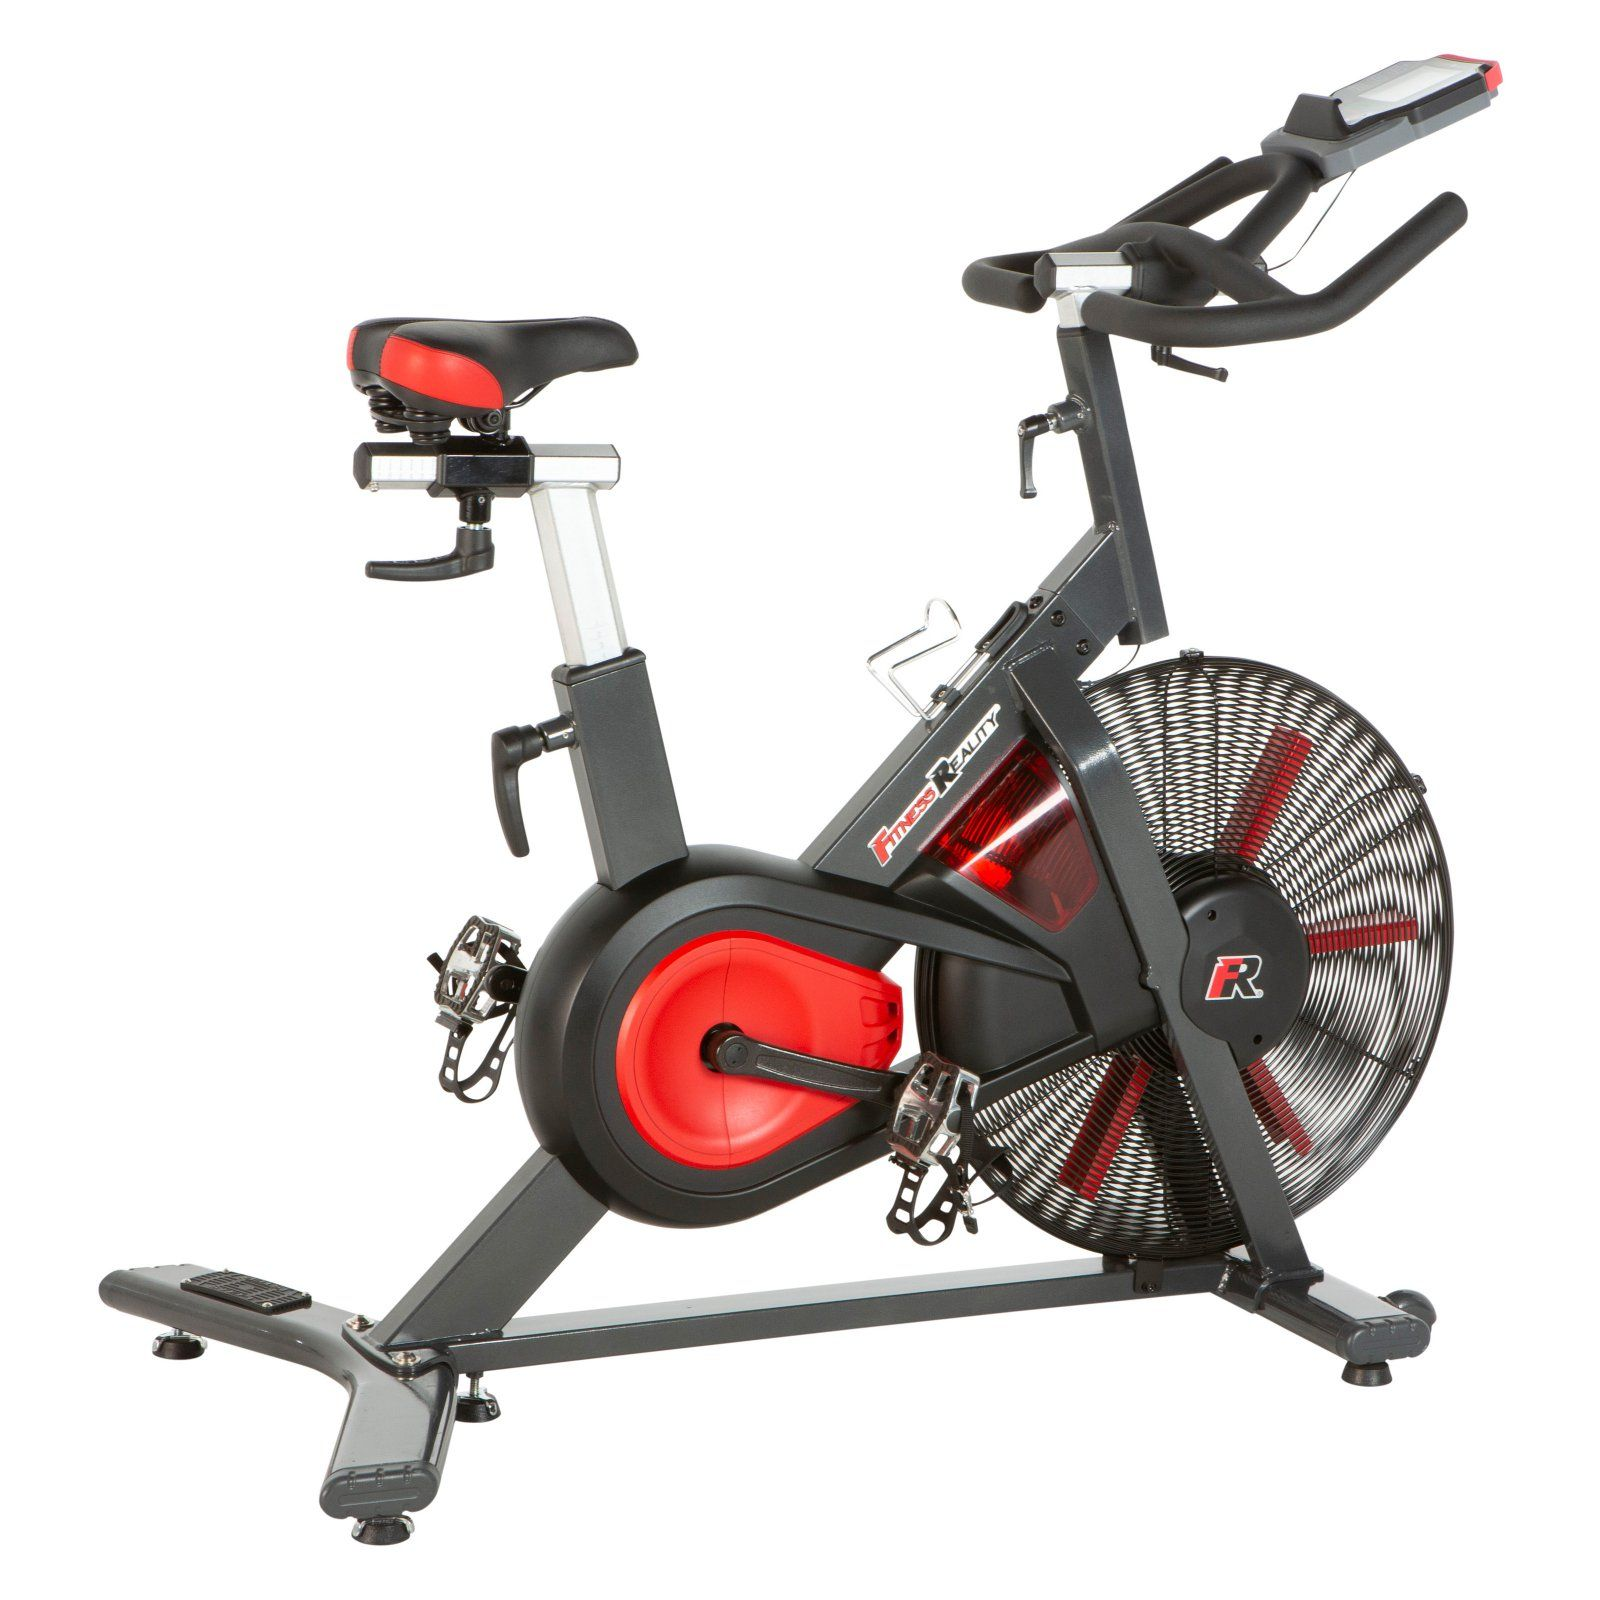 Fitness Reality X Class 9000 Indoor Cycling Exercise Bike Biking